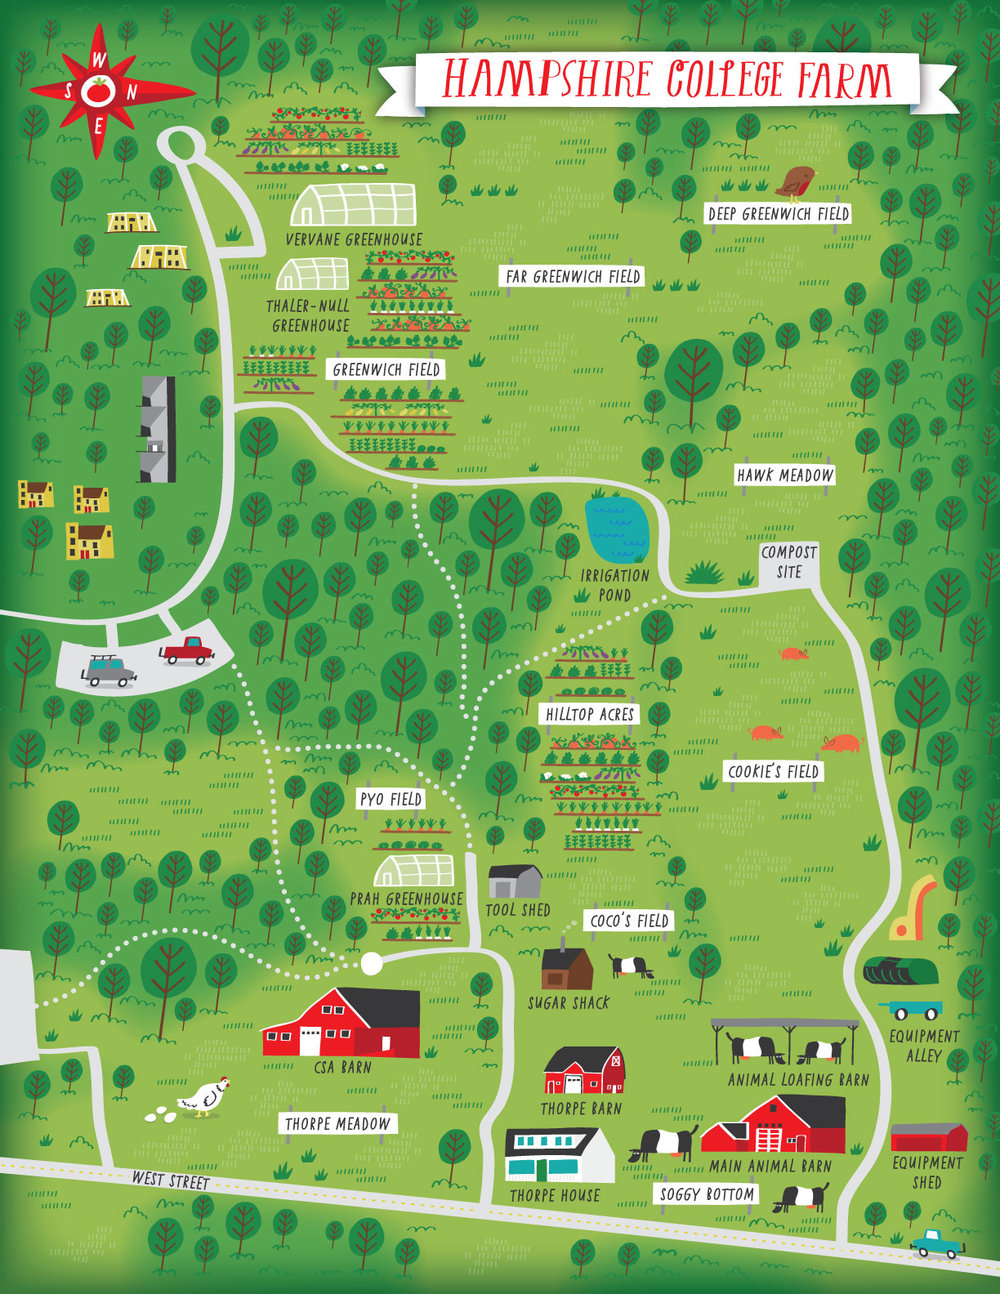 Illustrated campus map of Hampshire college farm